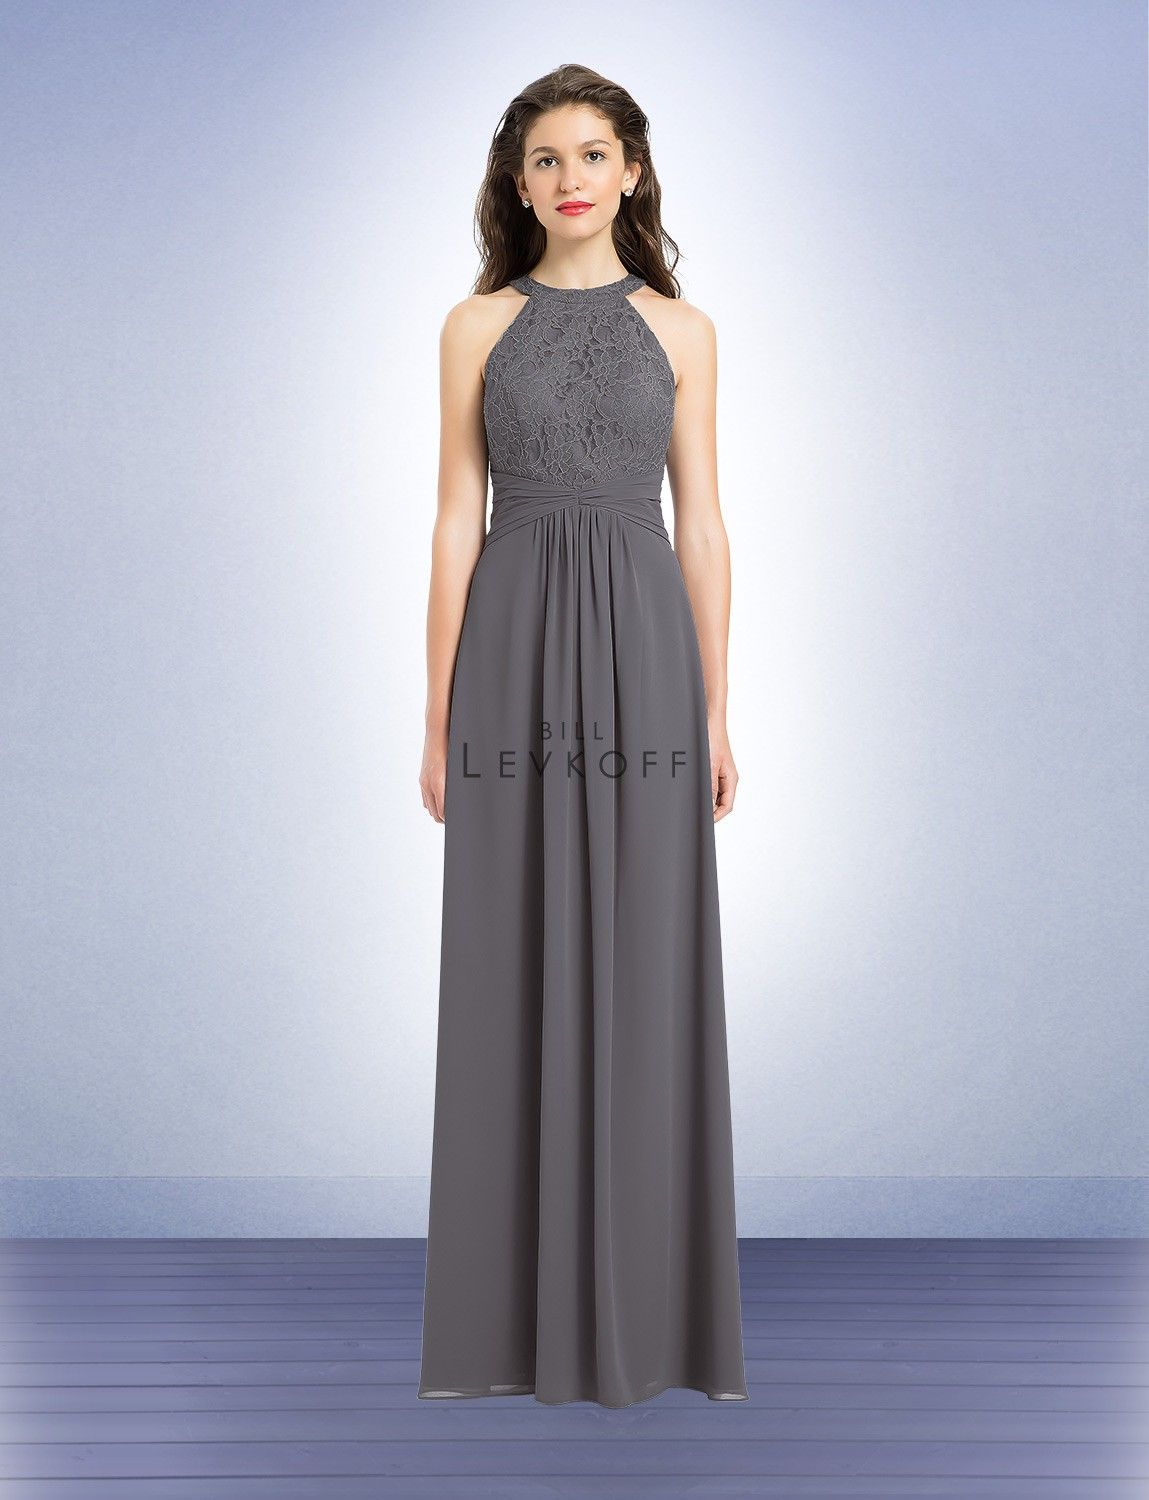 Bill levkoff high neck lace full length bridesmaid dress